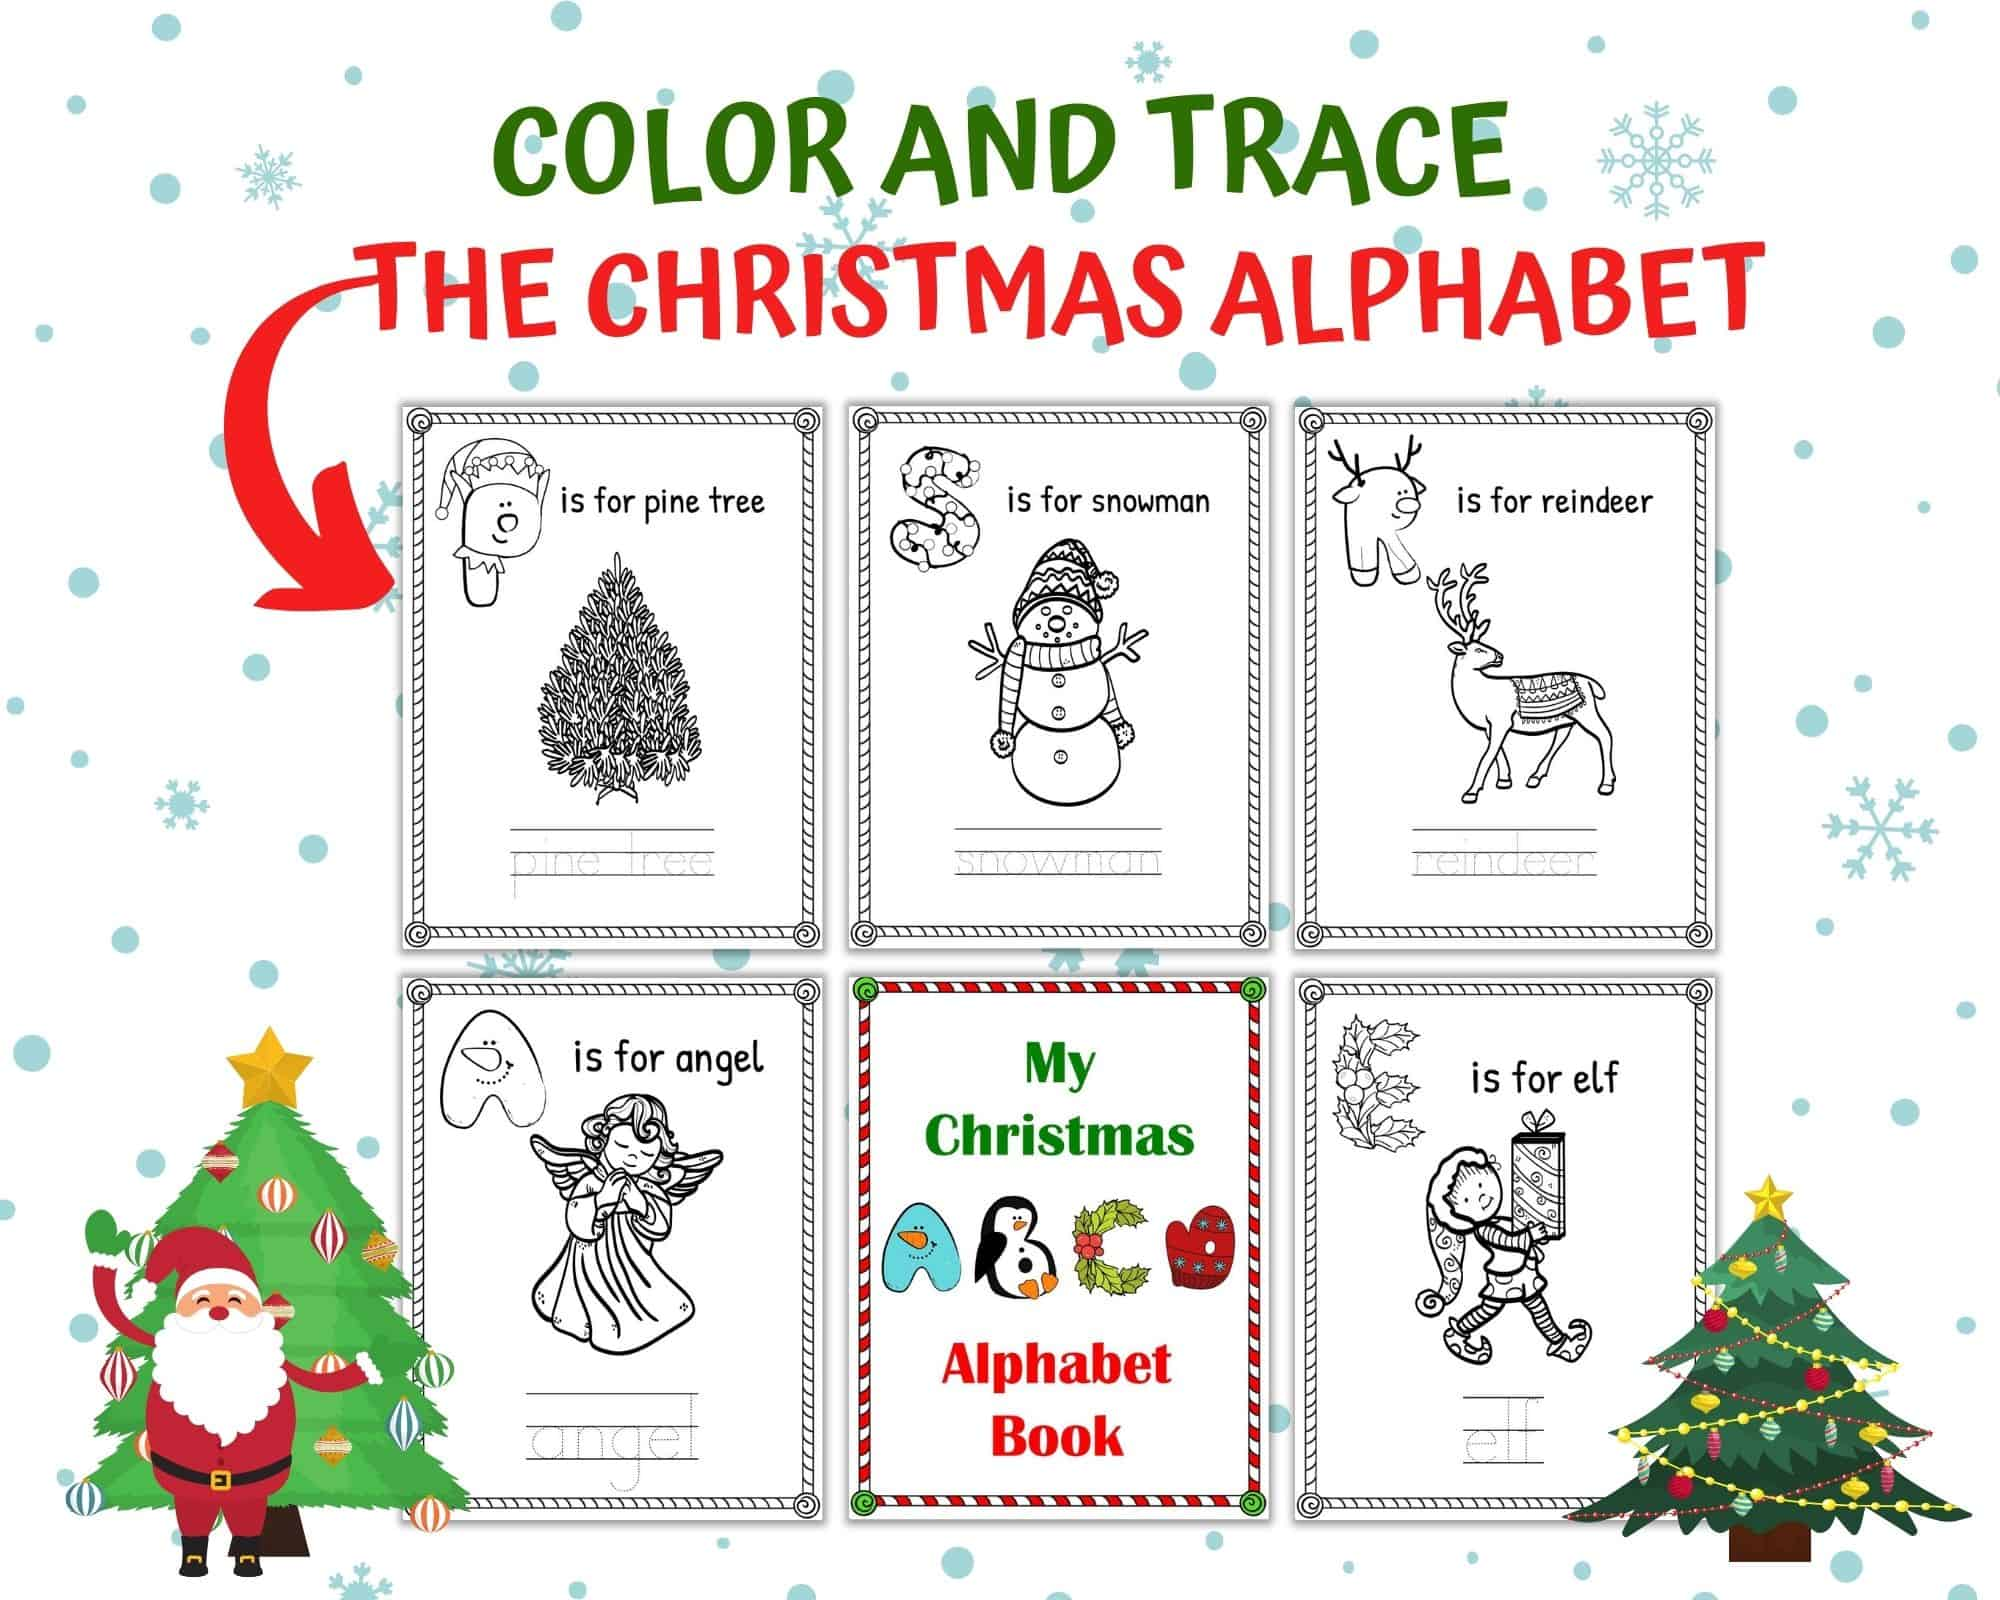 Free Christmas Alphabet Worksheets For Kindergarten